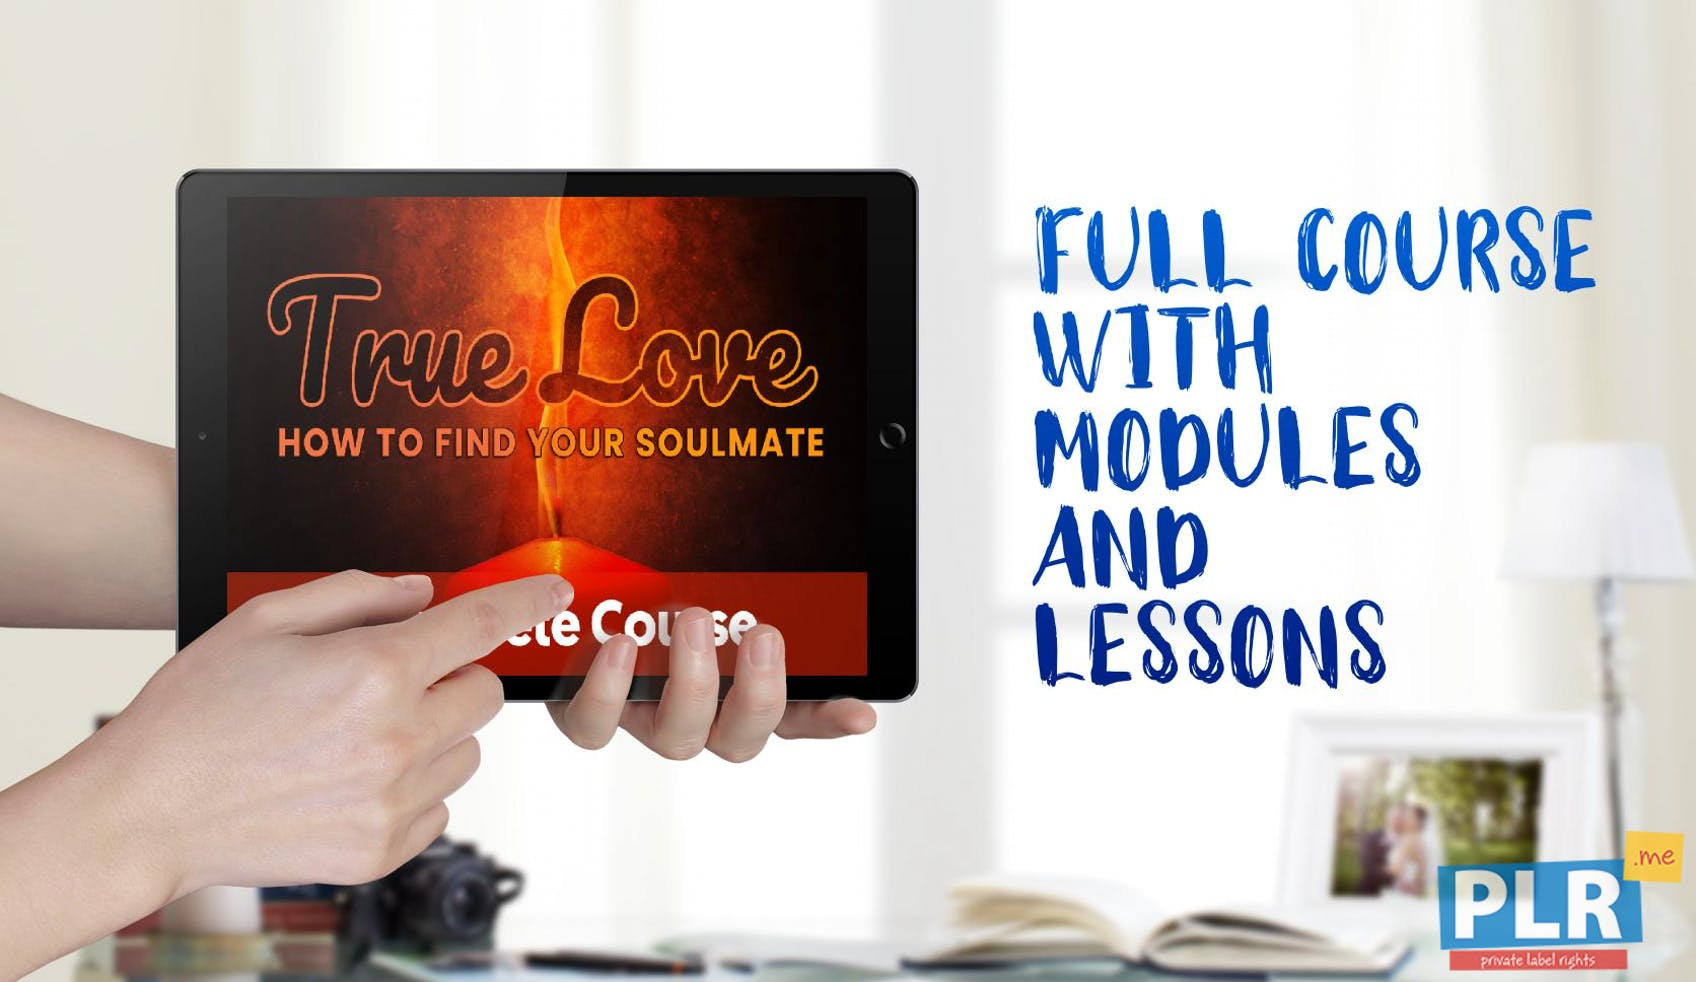 True Love: How To Find Your Soulmate - PLR Course